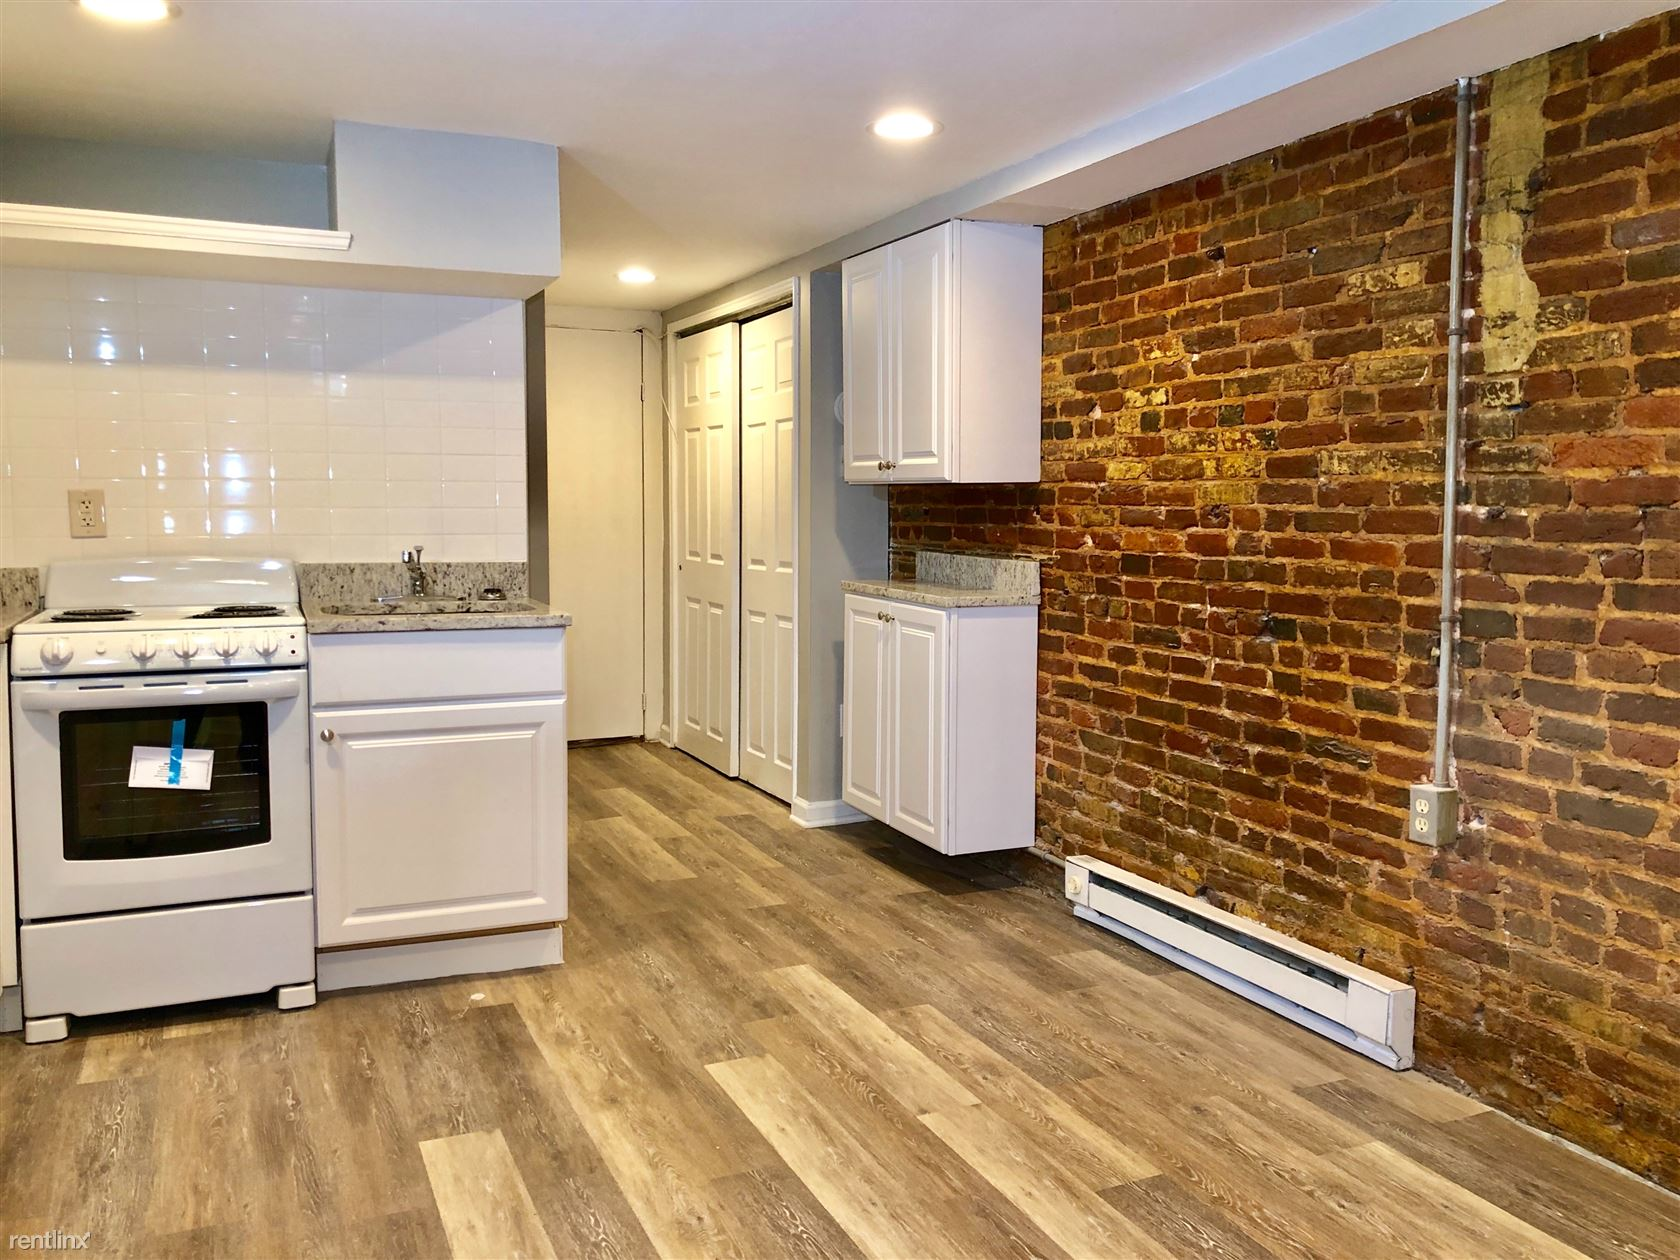 306 S Conkling St Unit 2, Baltimore, MD - $725